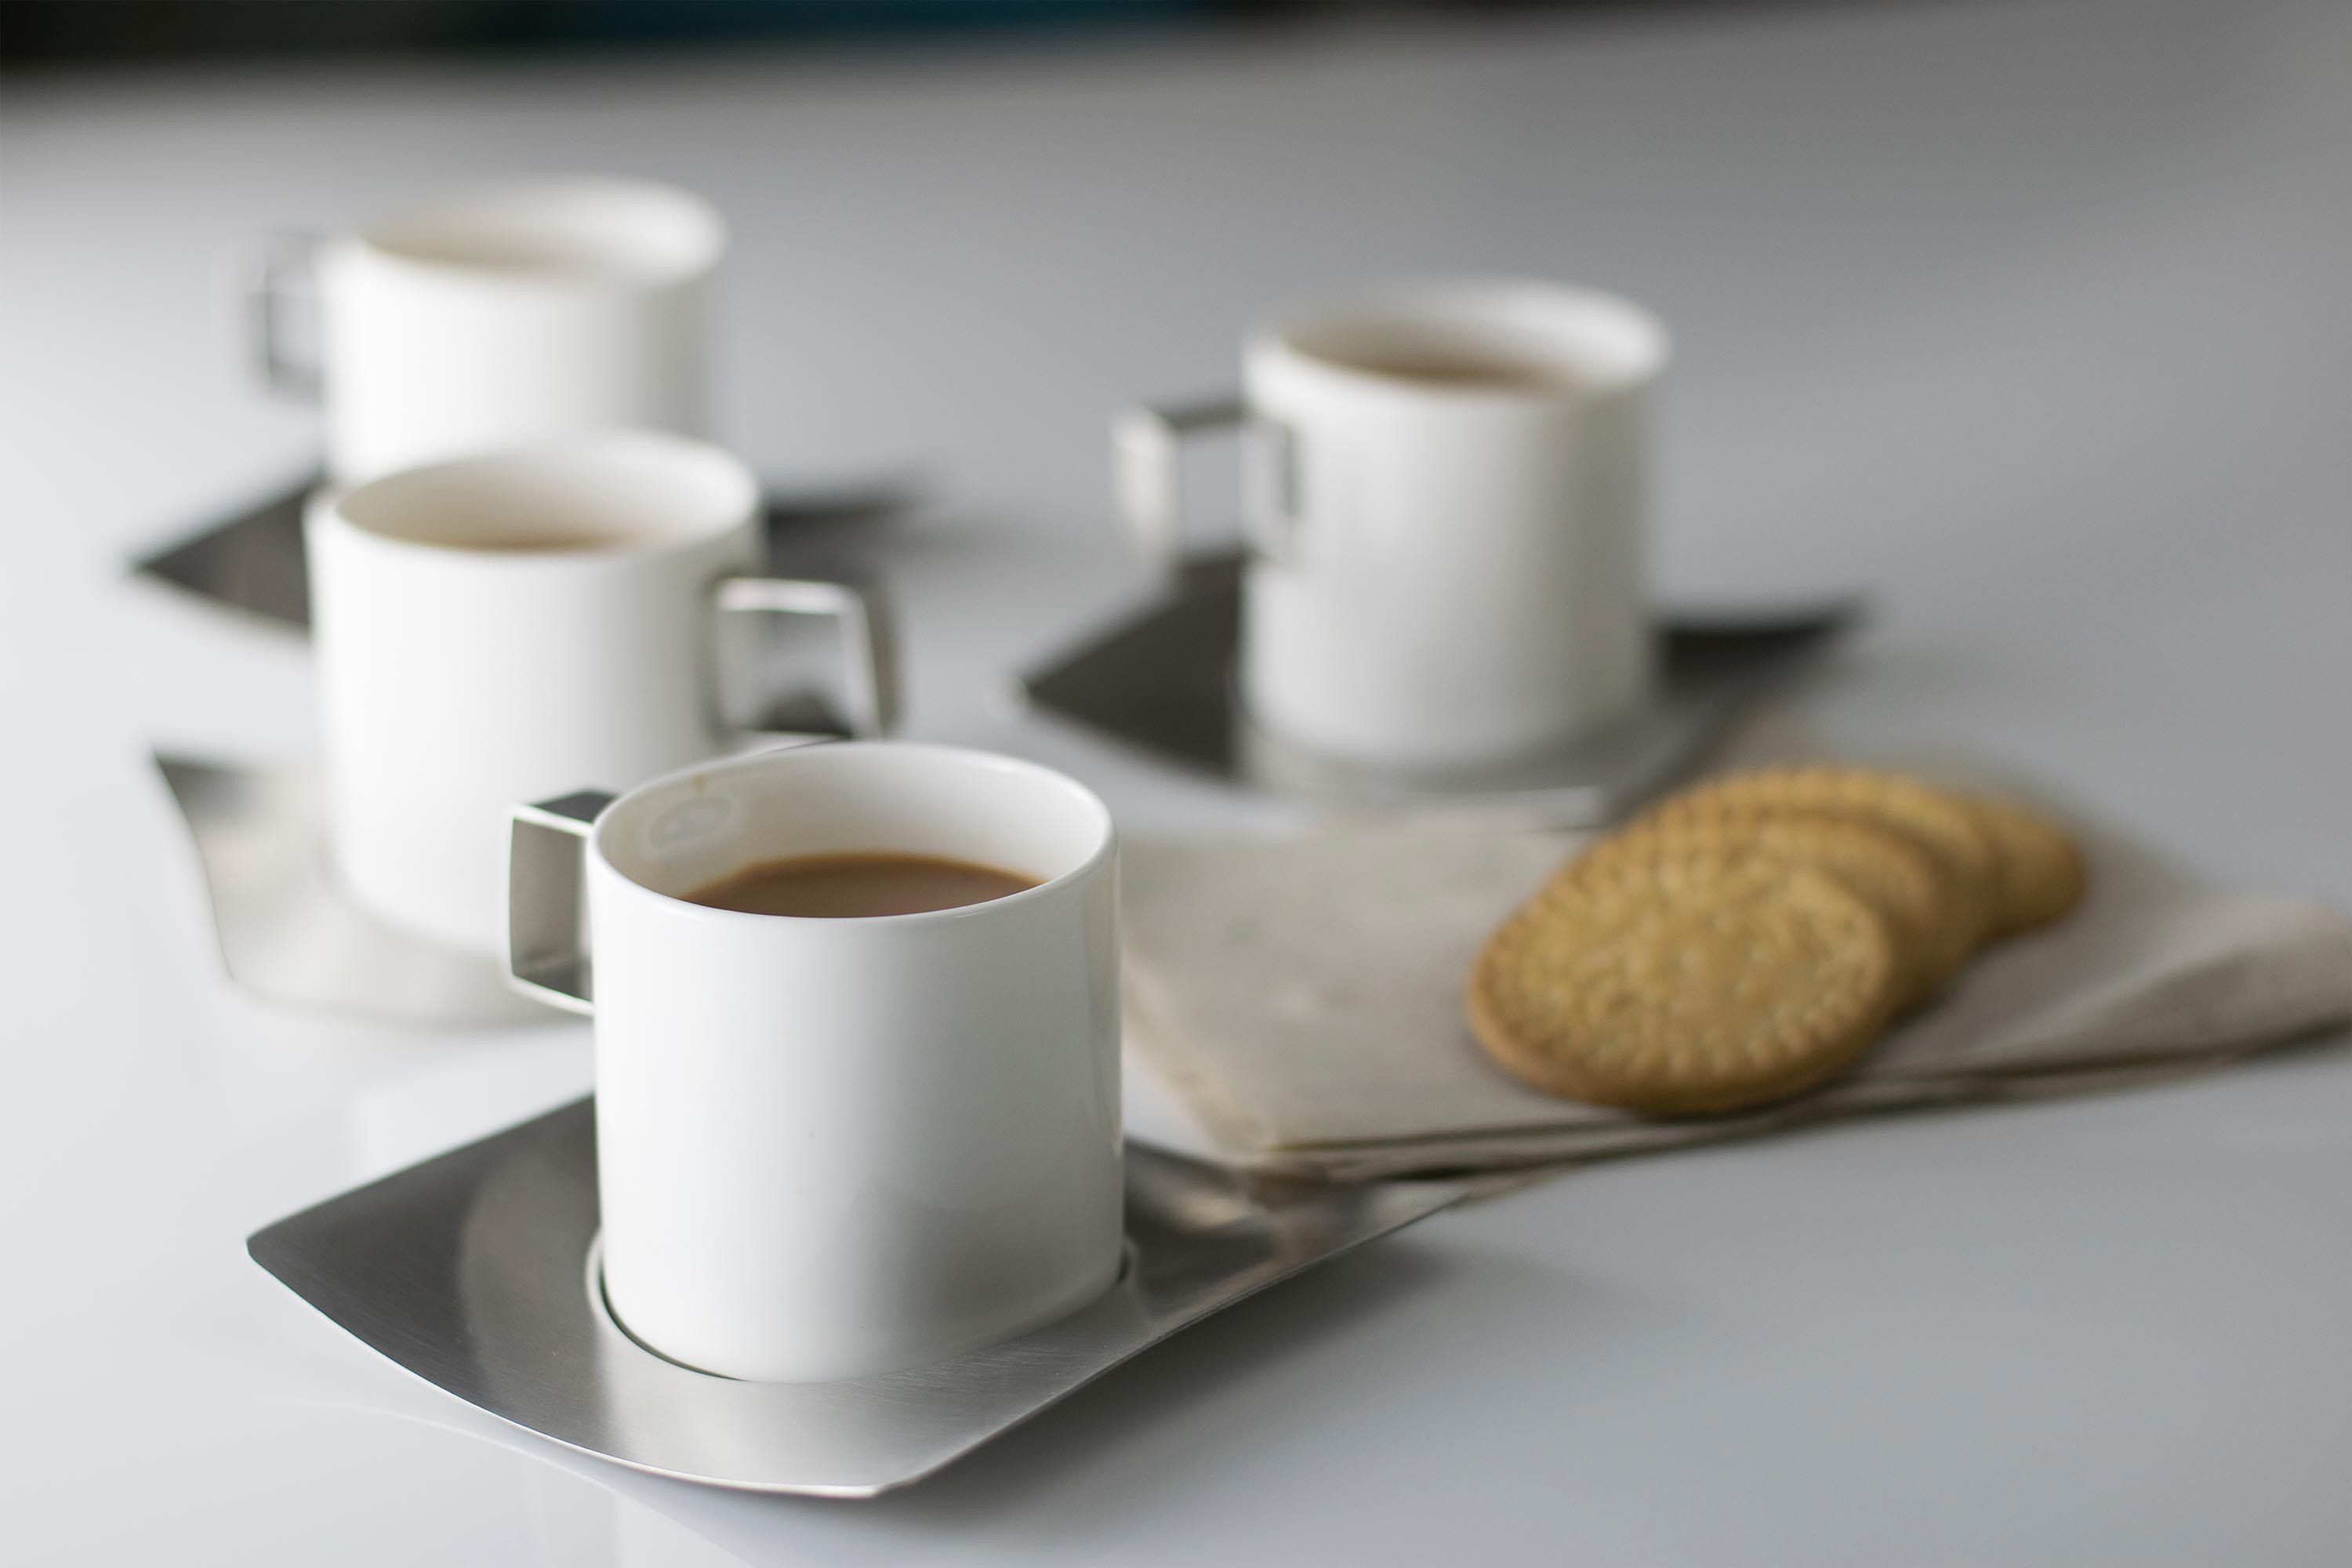 Hot Muggs Blanche Fine Bone China Cup with Stainless Steel Handle and Stainless Steel Saucer 200 ml, 8 Pc Stainless steel Cups & Saucers in White Colour by HotMuggs